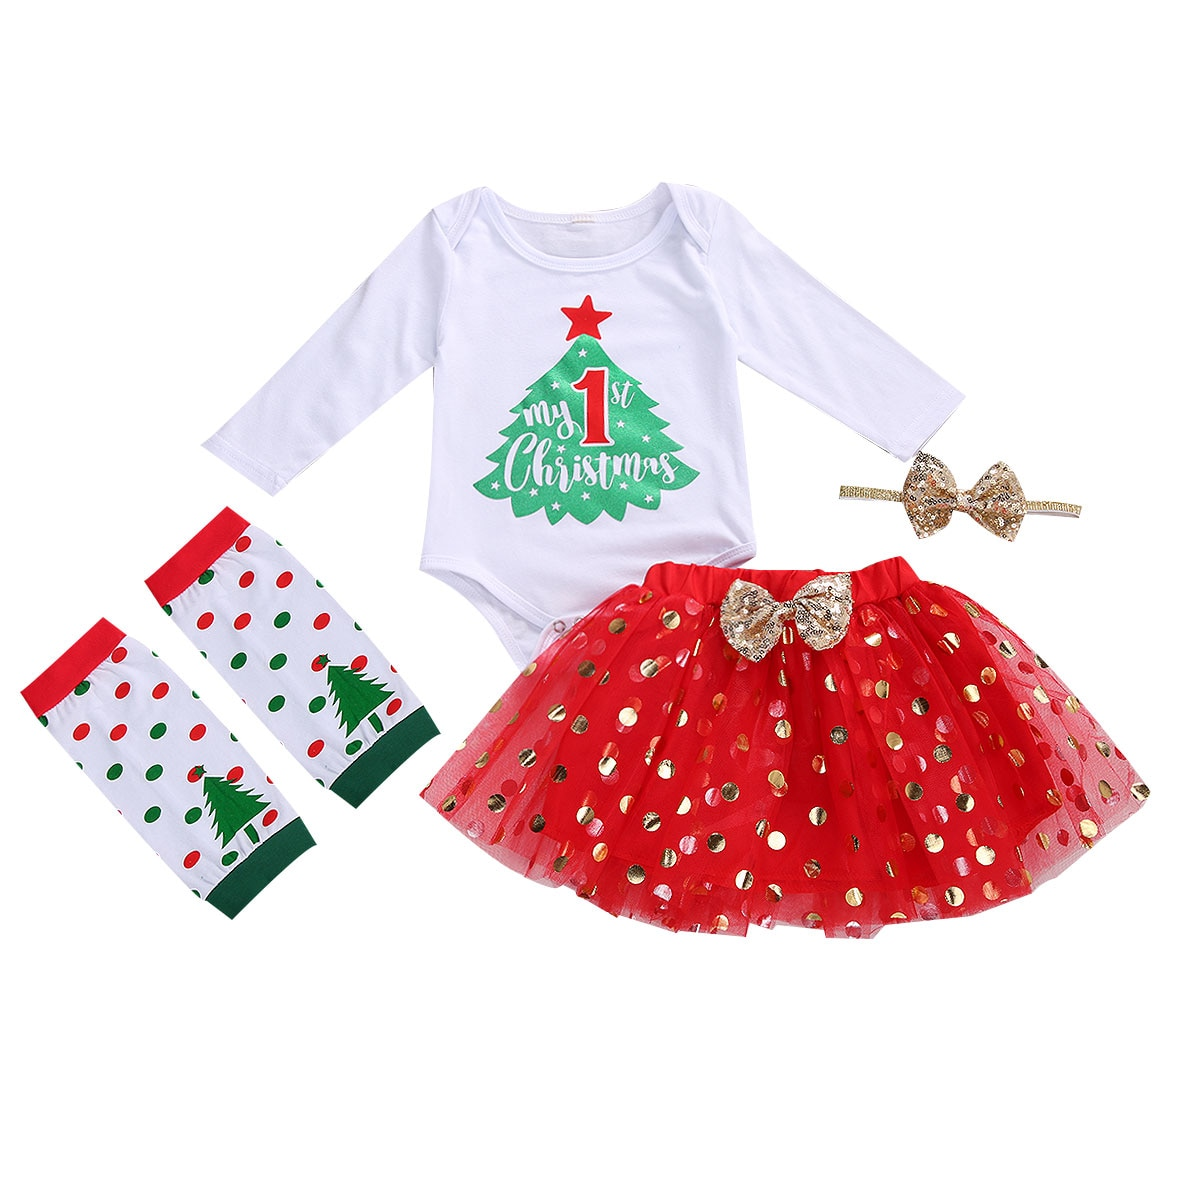 Newborn Baby Girl First Christmas Outfits Printed Romper Top+Sequin Tutu Voile Skirt+Leg Warmers+Headband 4pcs Xmas Clothes Set недорого